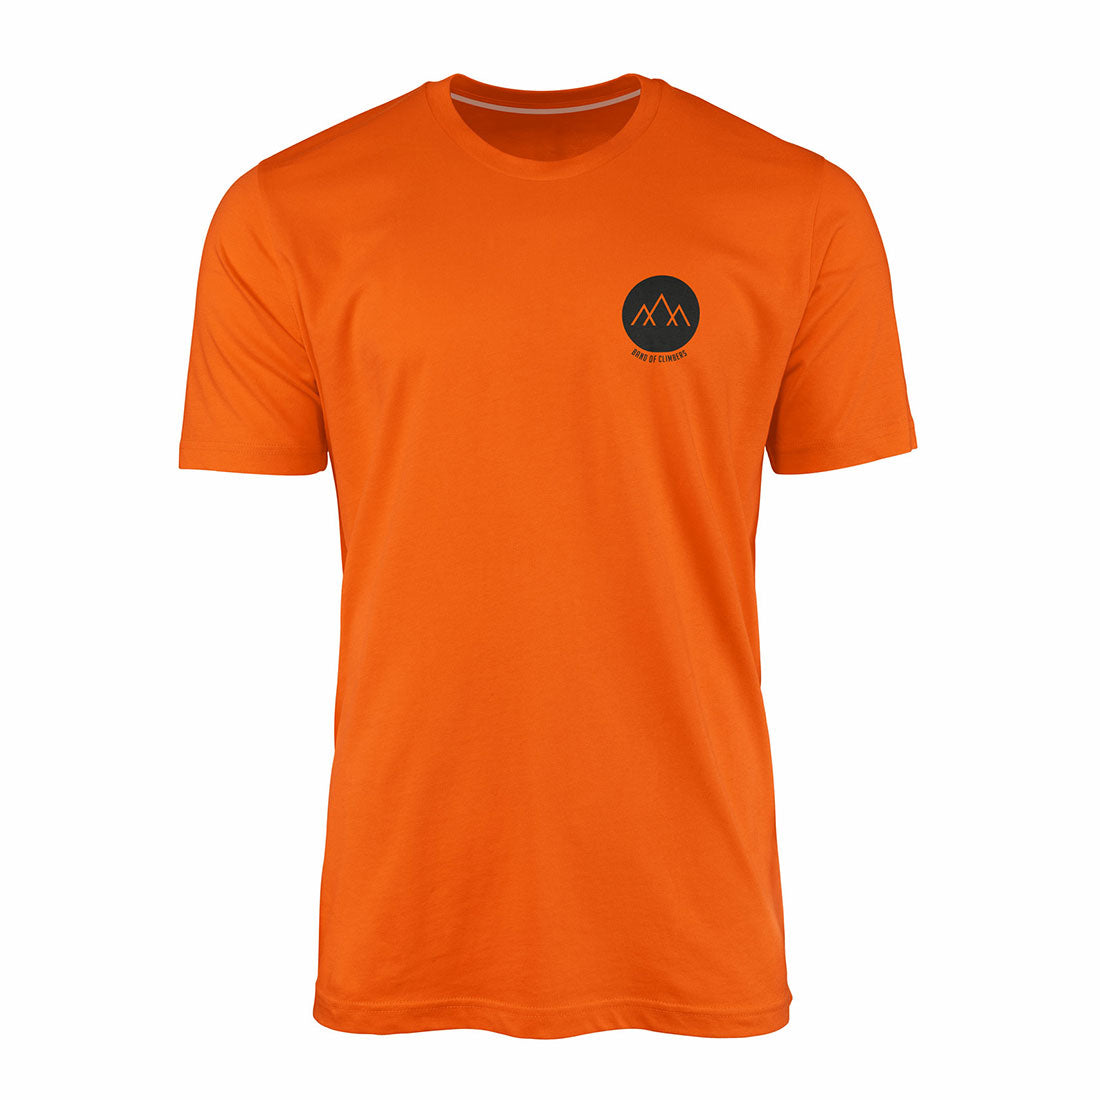 Icon Tech T-shirt - Orange